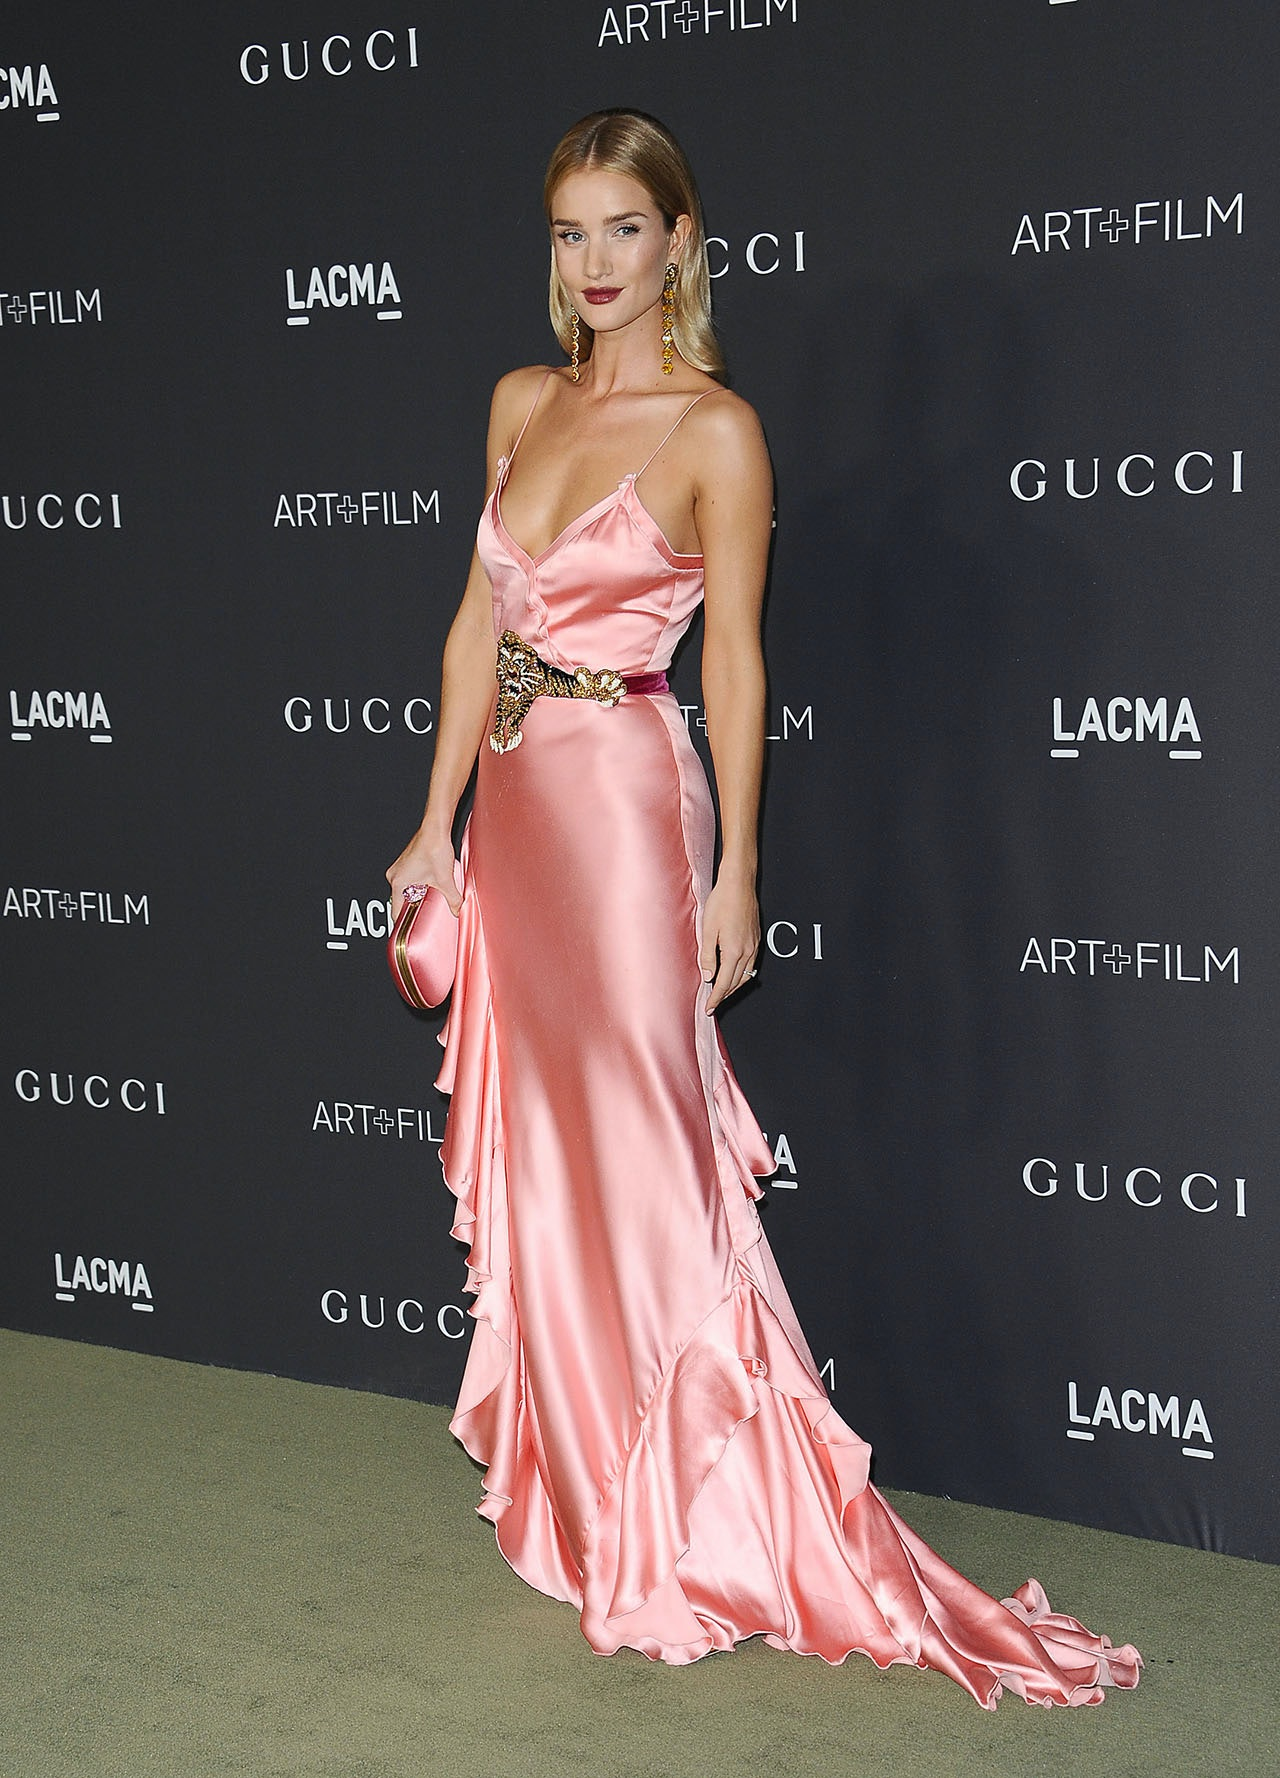 973d4e27797 The Best Looks From LACMA's Art + Film Gala